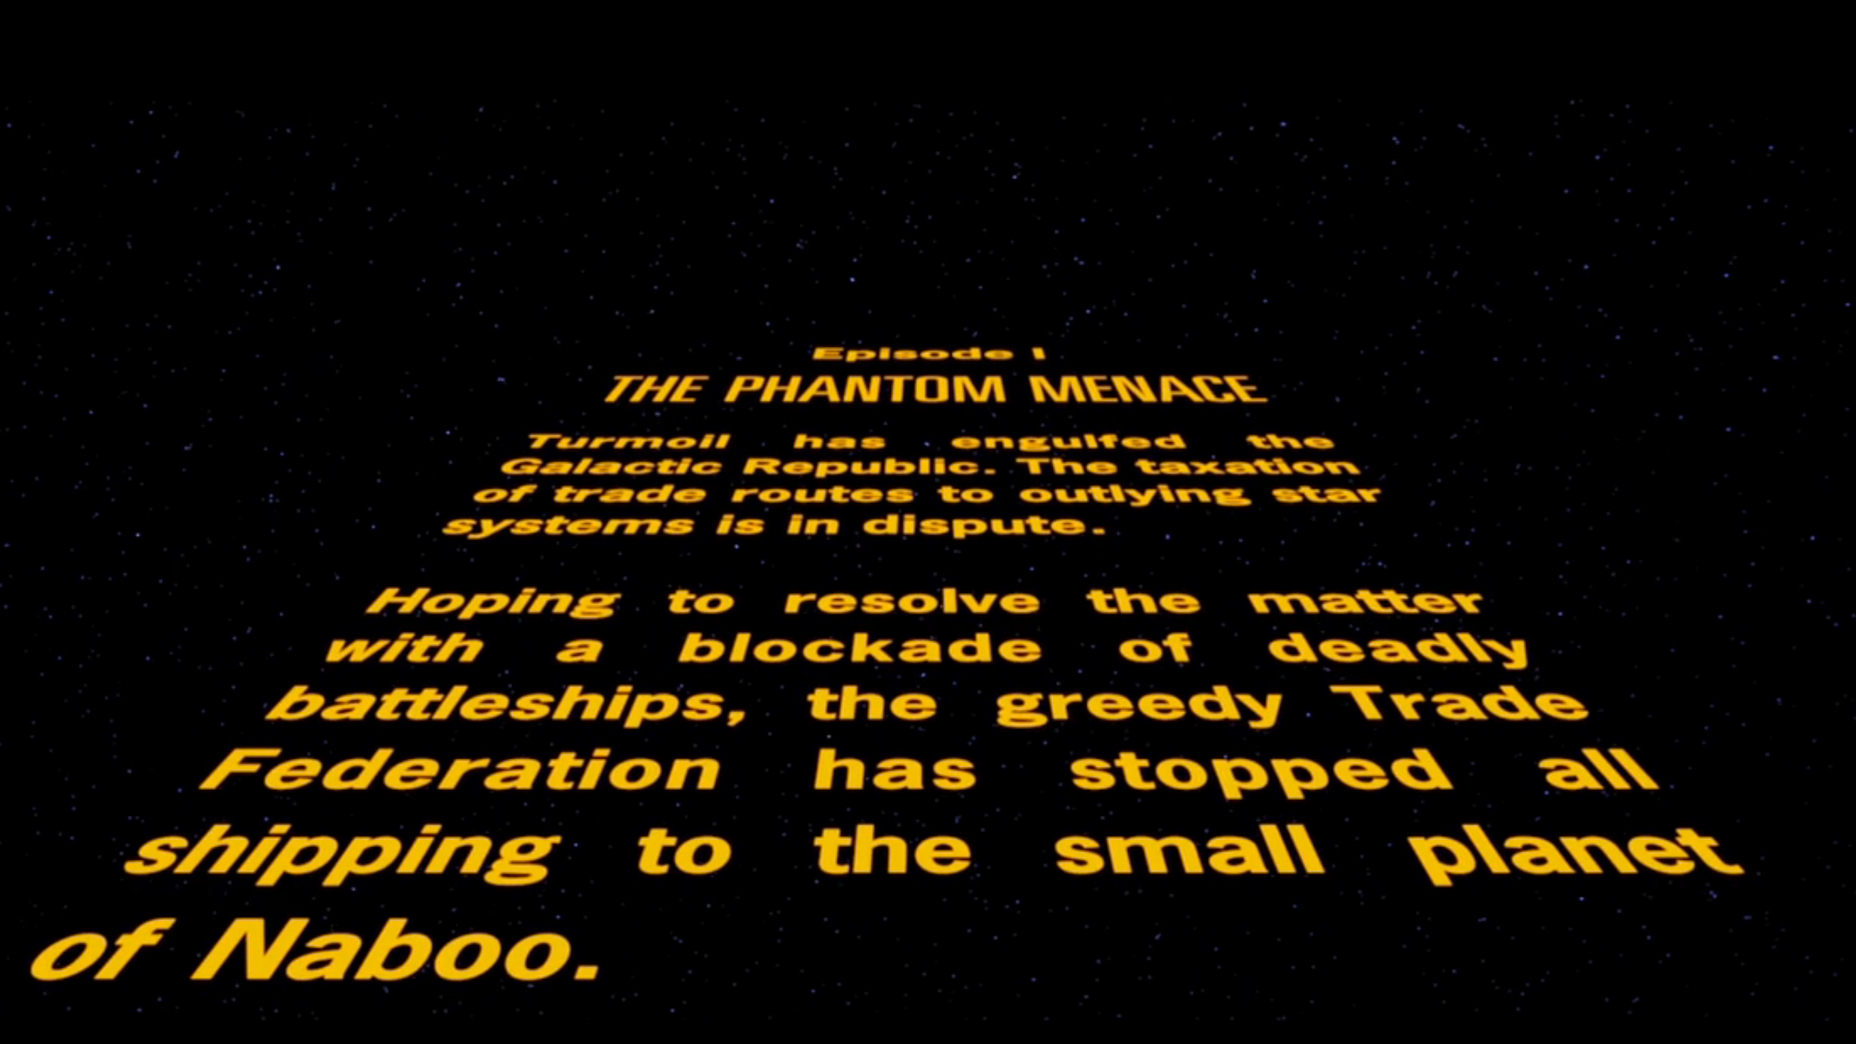 star wars opening crawl - photo #13